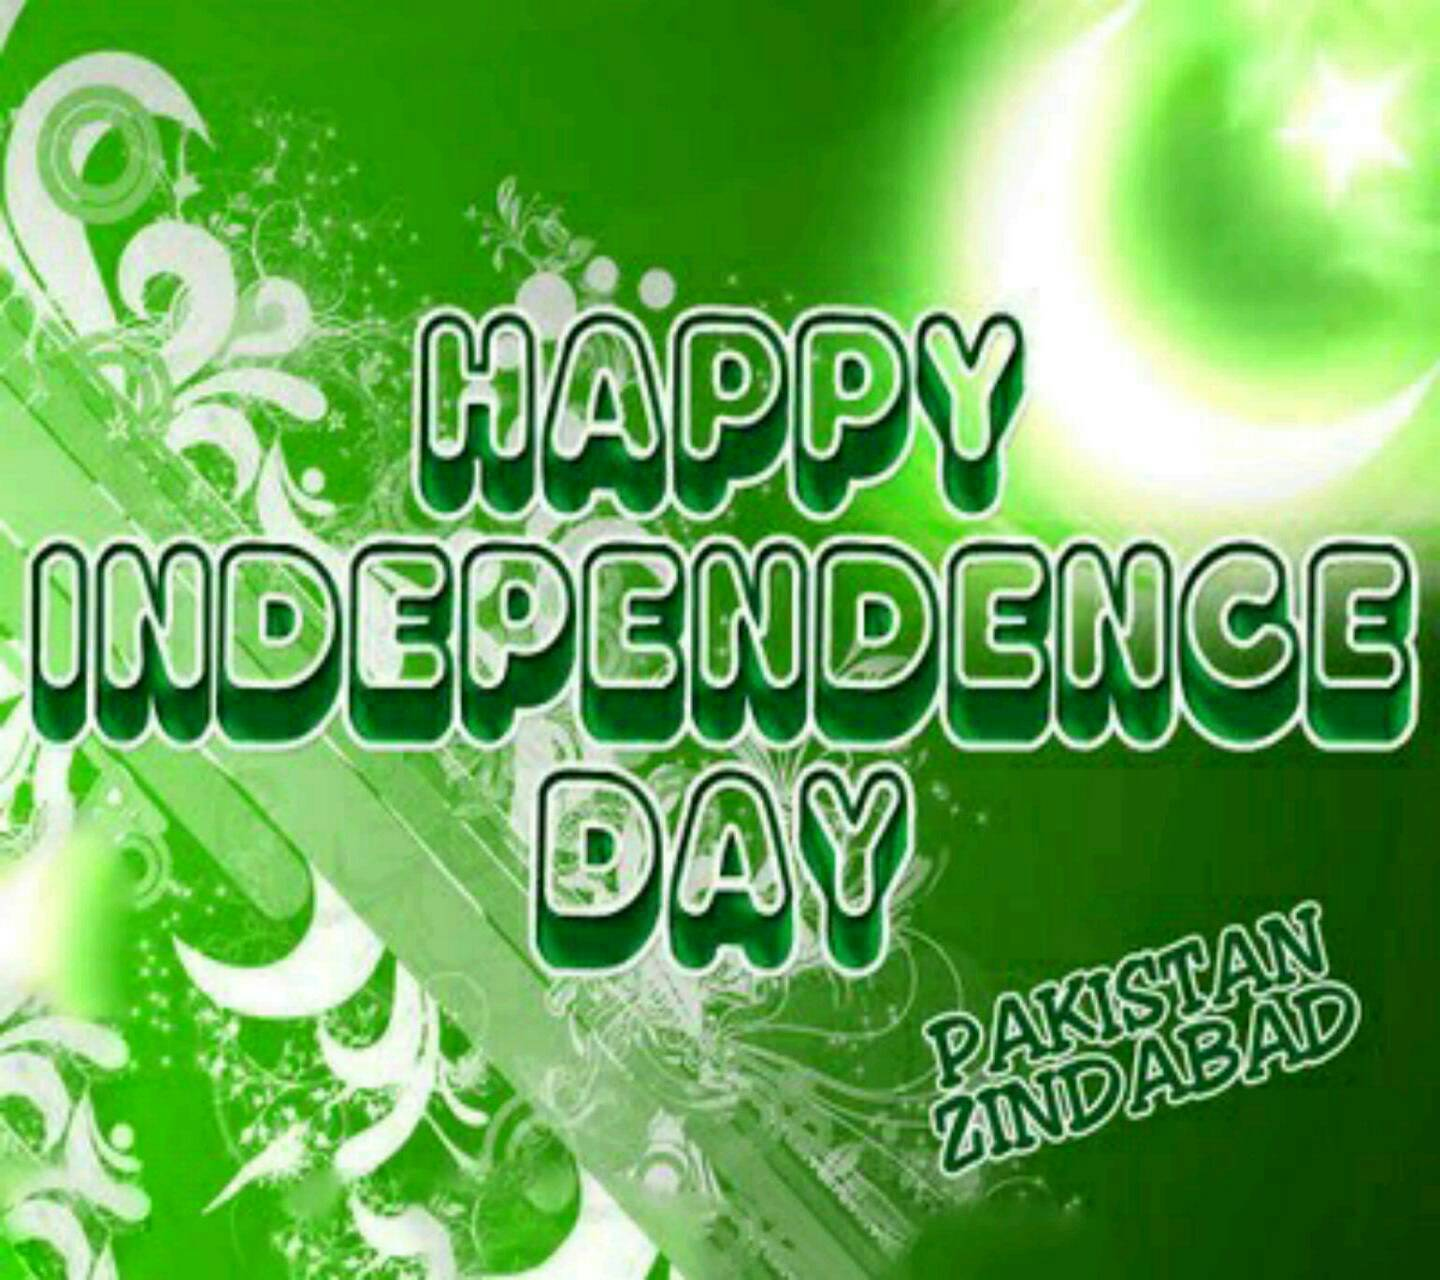 Independence Day Wallpaper By Angelsehar 26 Free On Zedge